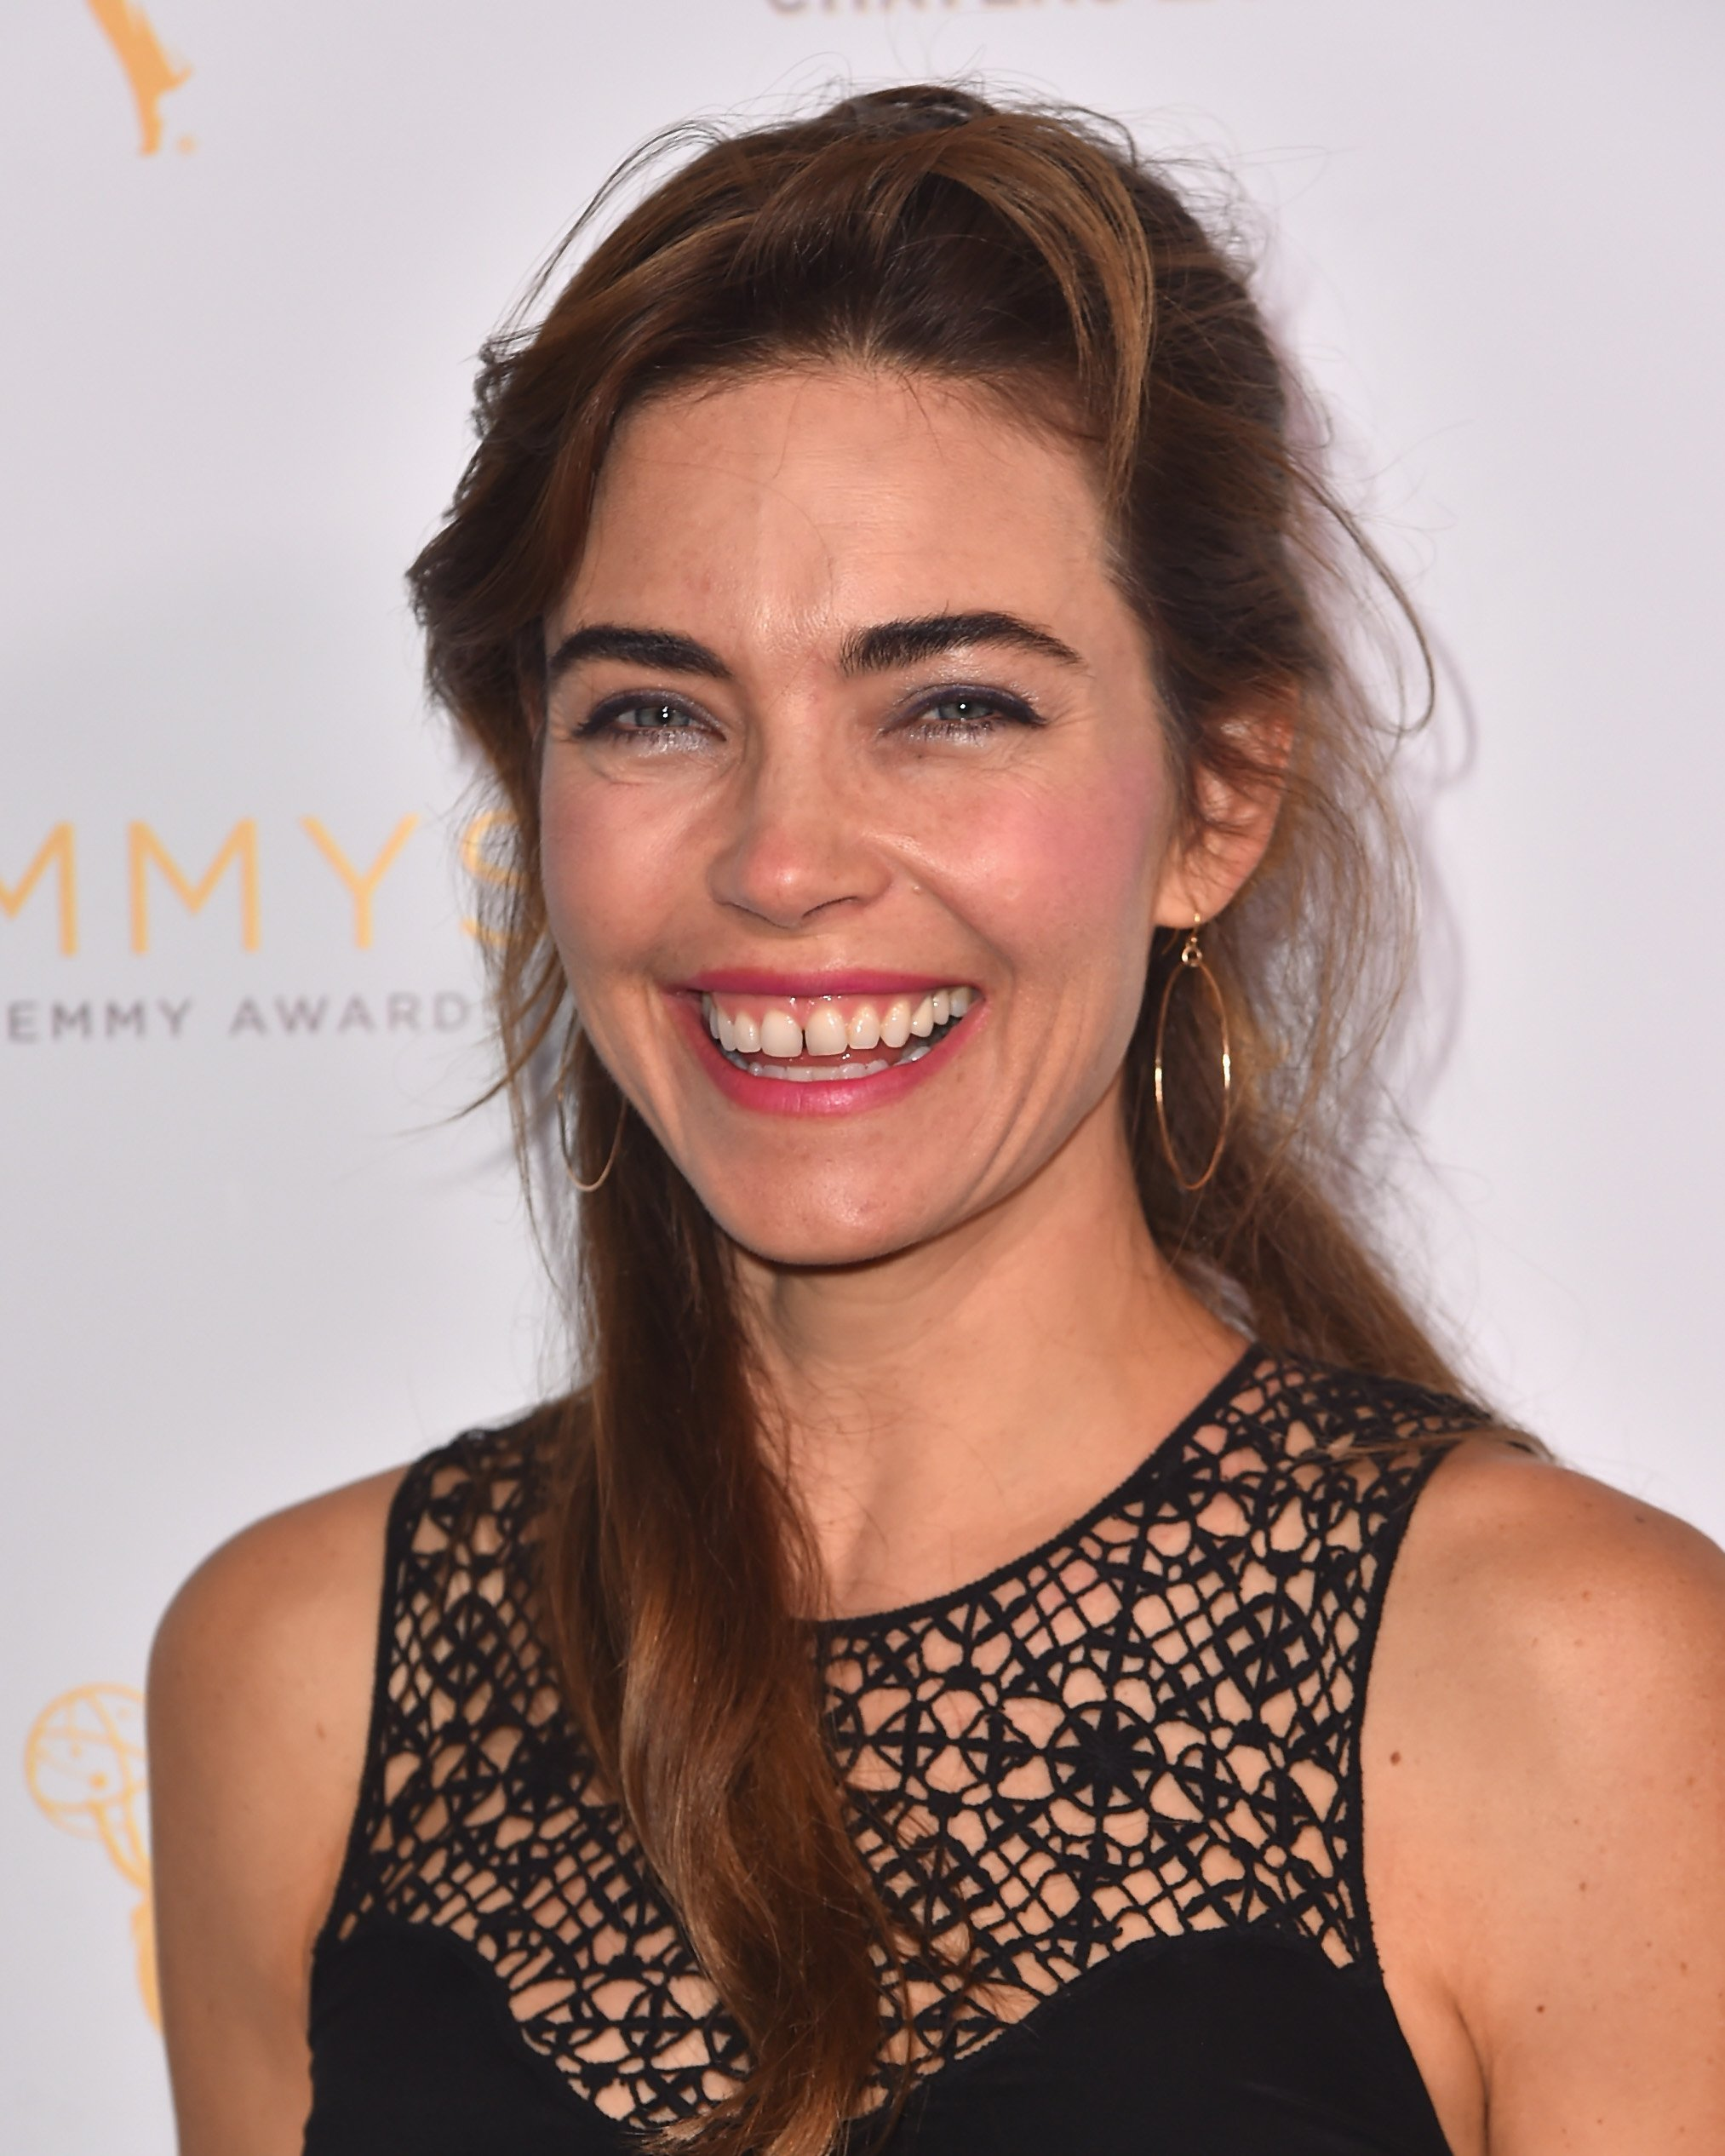 Amelia Heinle attends a cocktail reception hosted by the Academy of Television Arts & Sciences celebrating the Daytime Peer Group. | Source: Getty Images